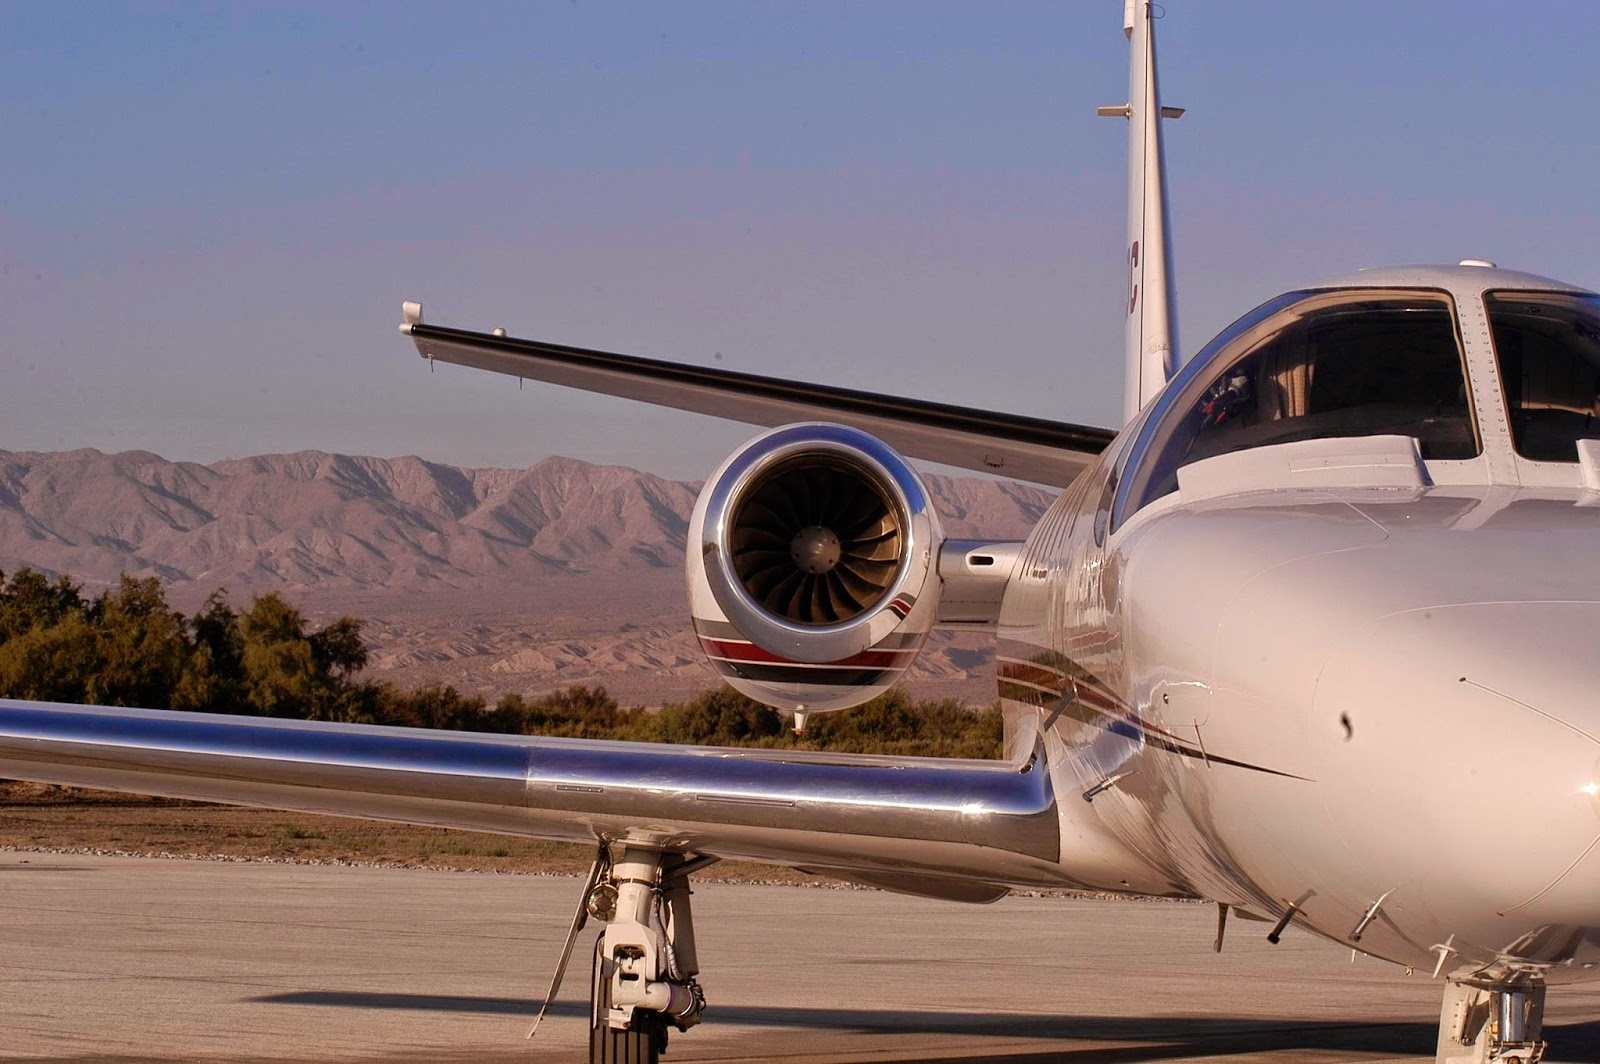 Aircraft Charter Safety Ratings - What Do They Really Mean? | Charter Business